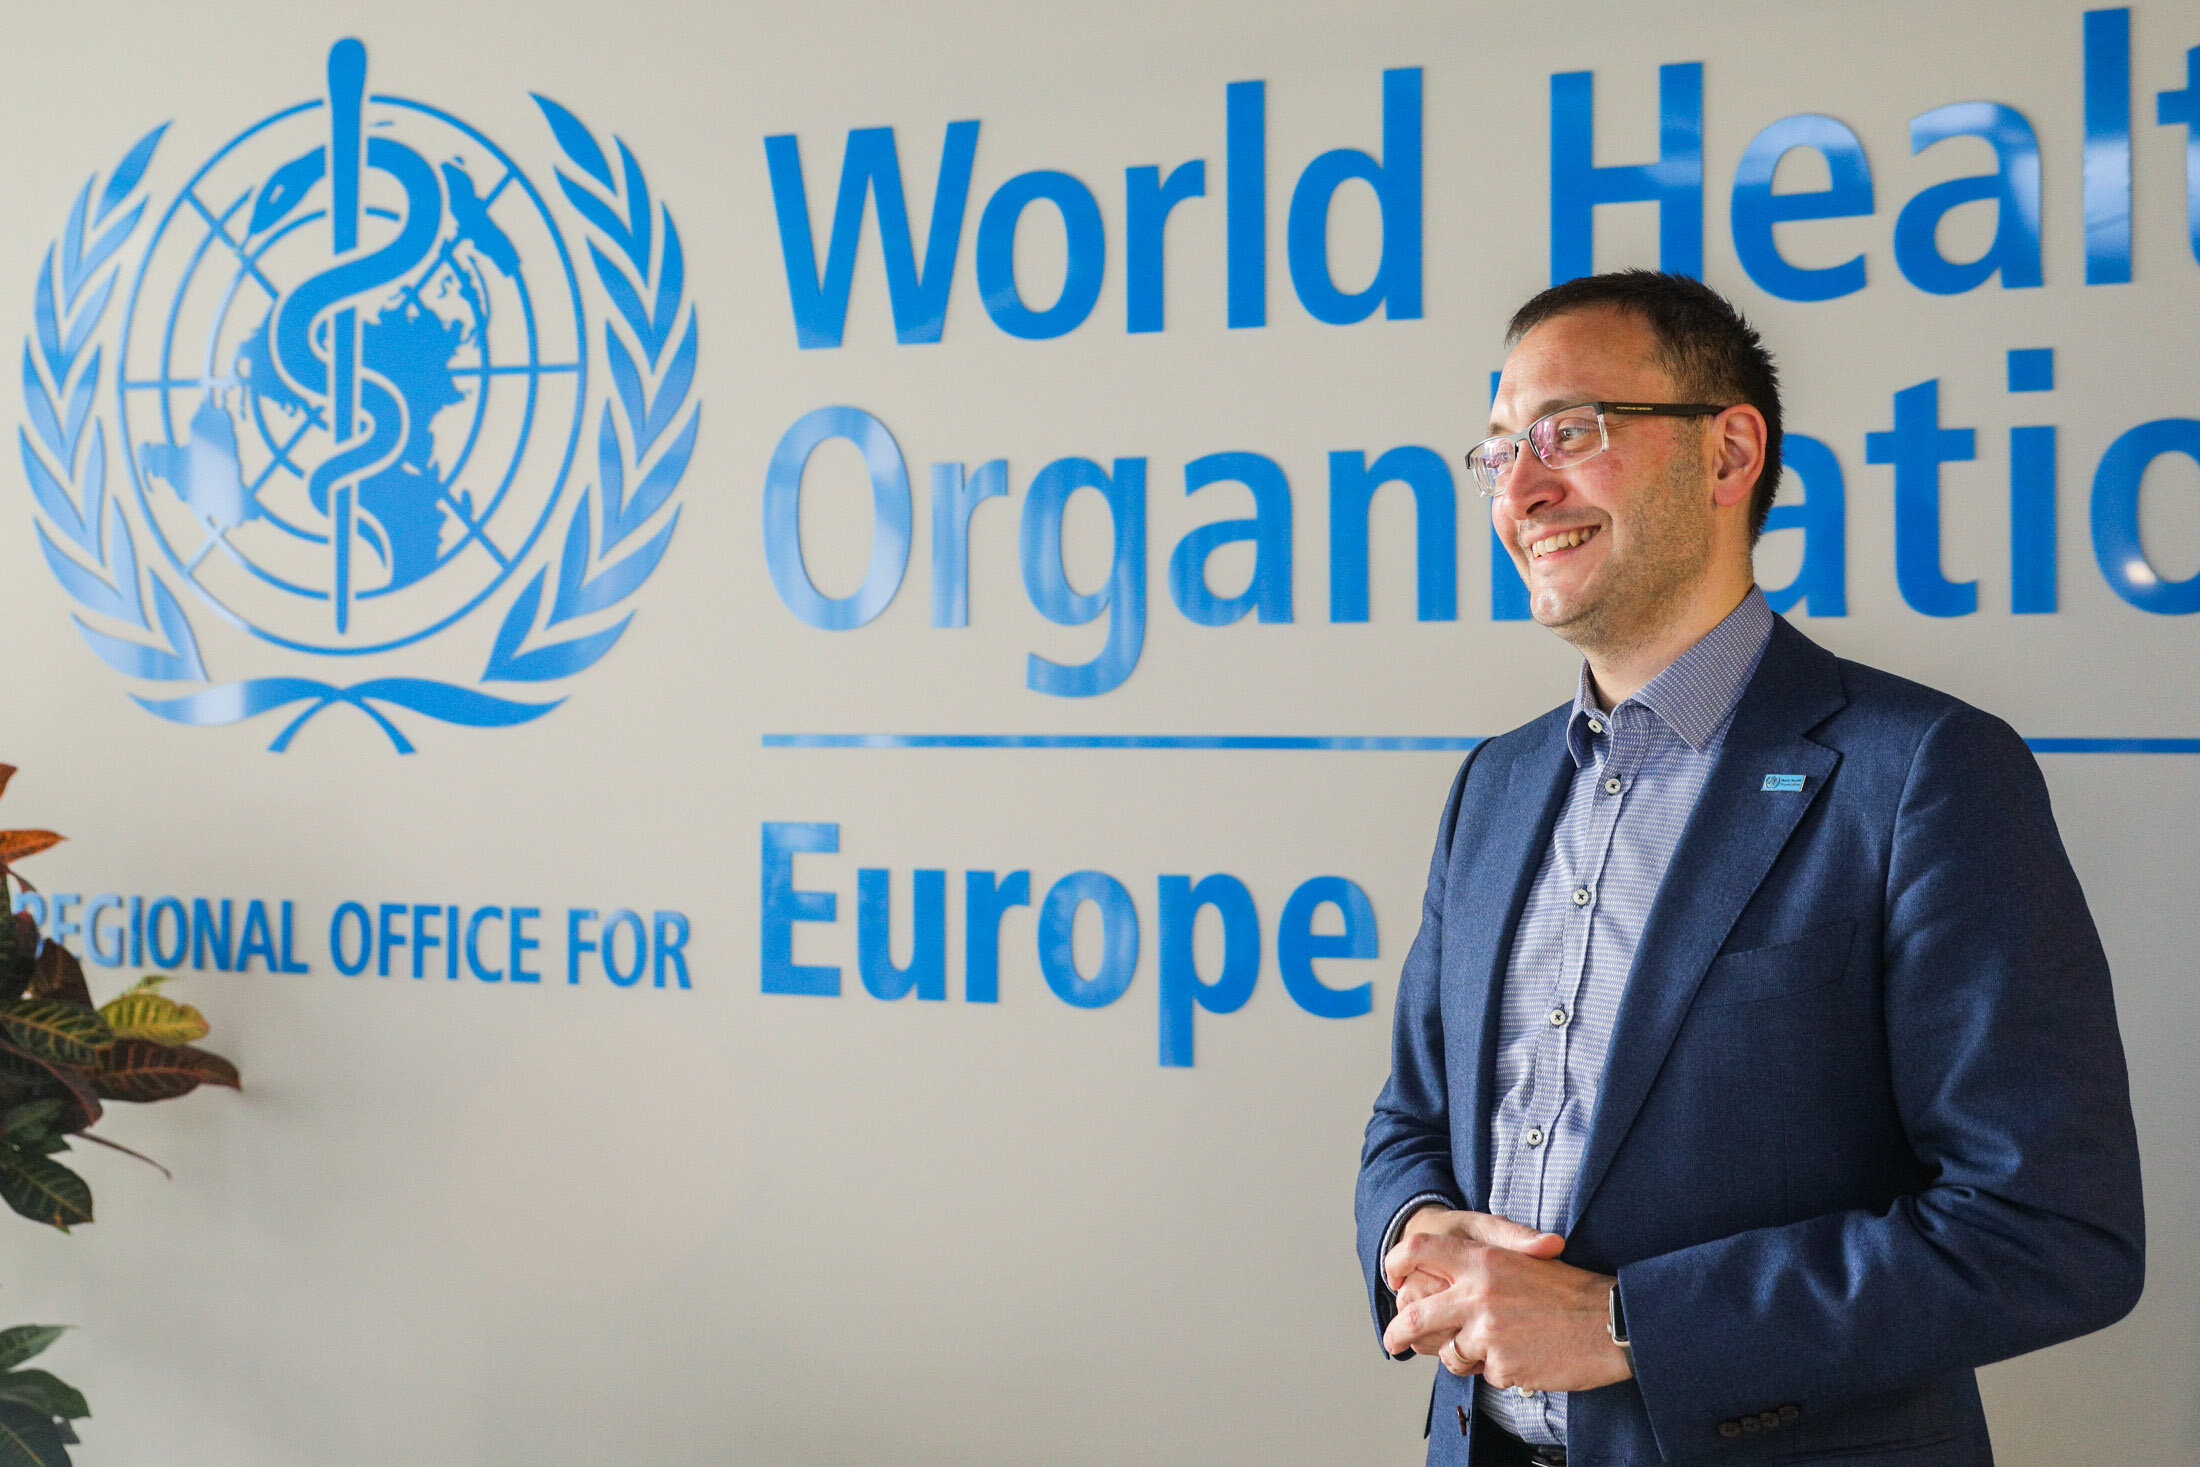 WHO envoy to Ukraine: Scale up testing, distance, adjust to new normal